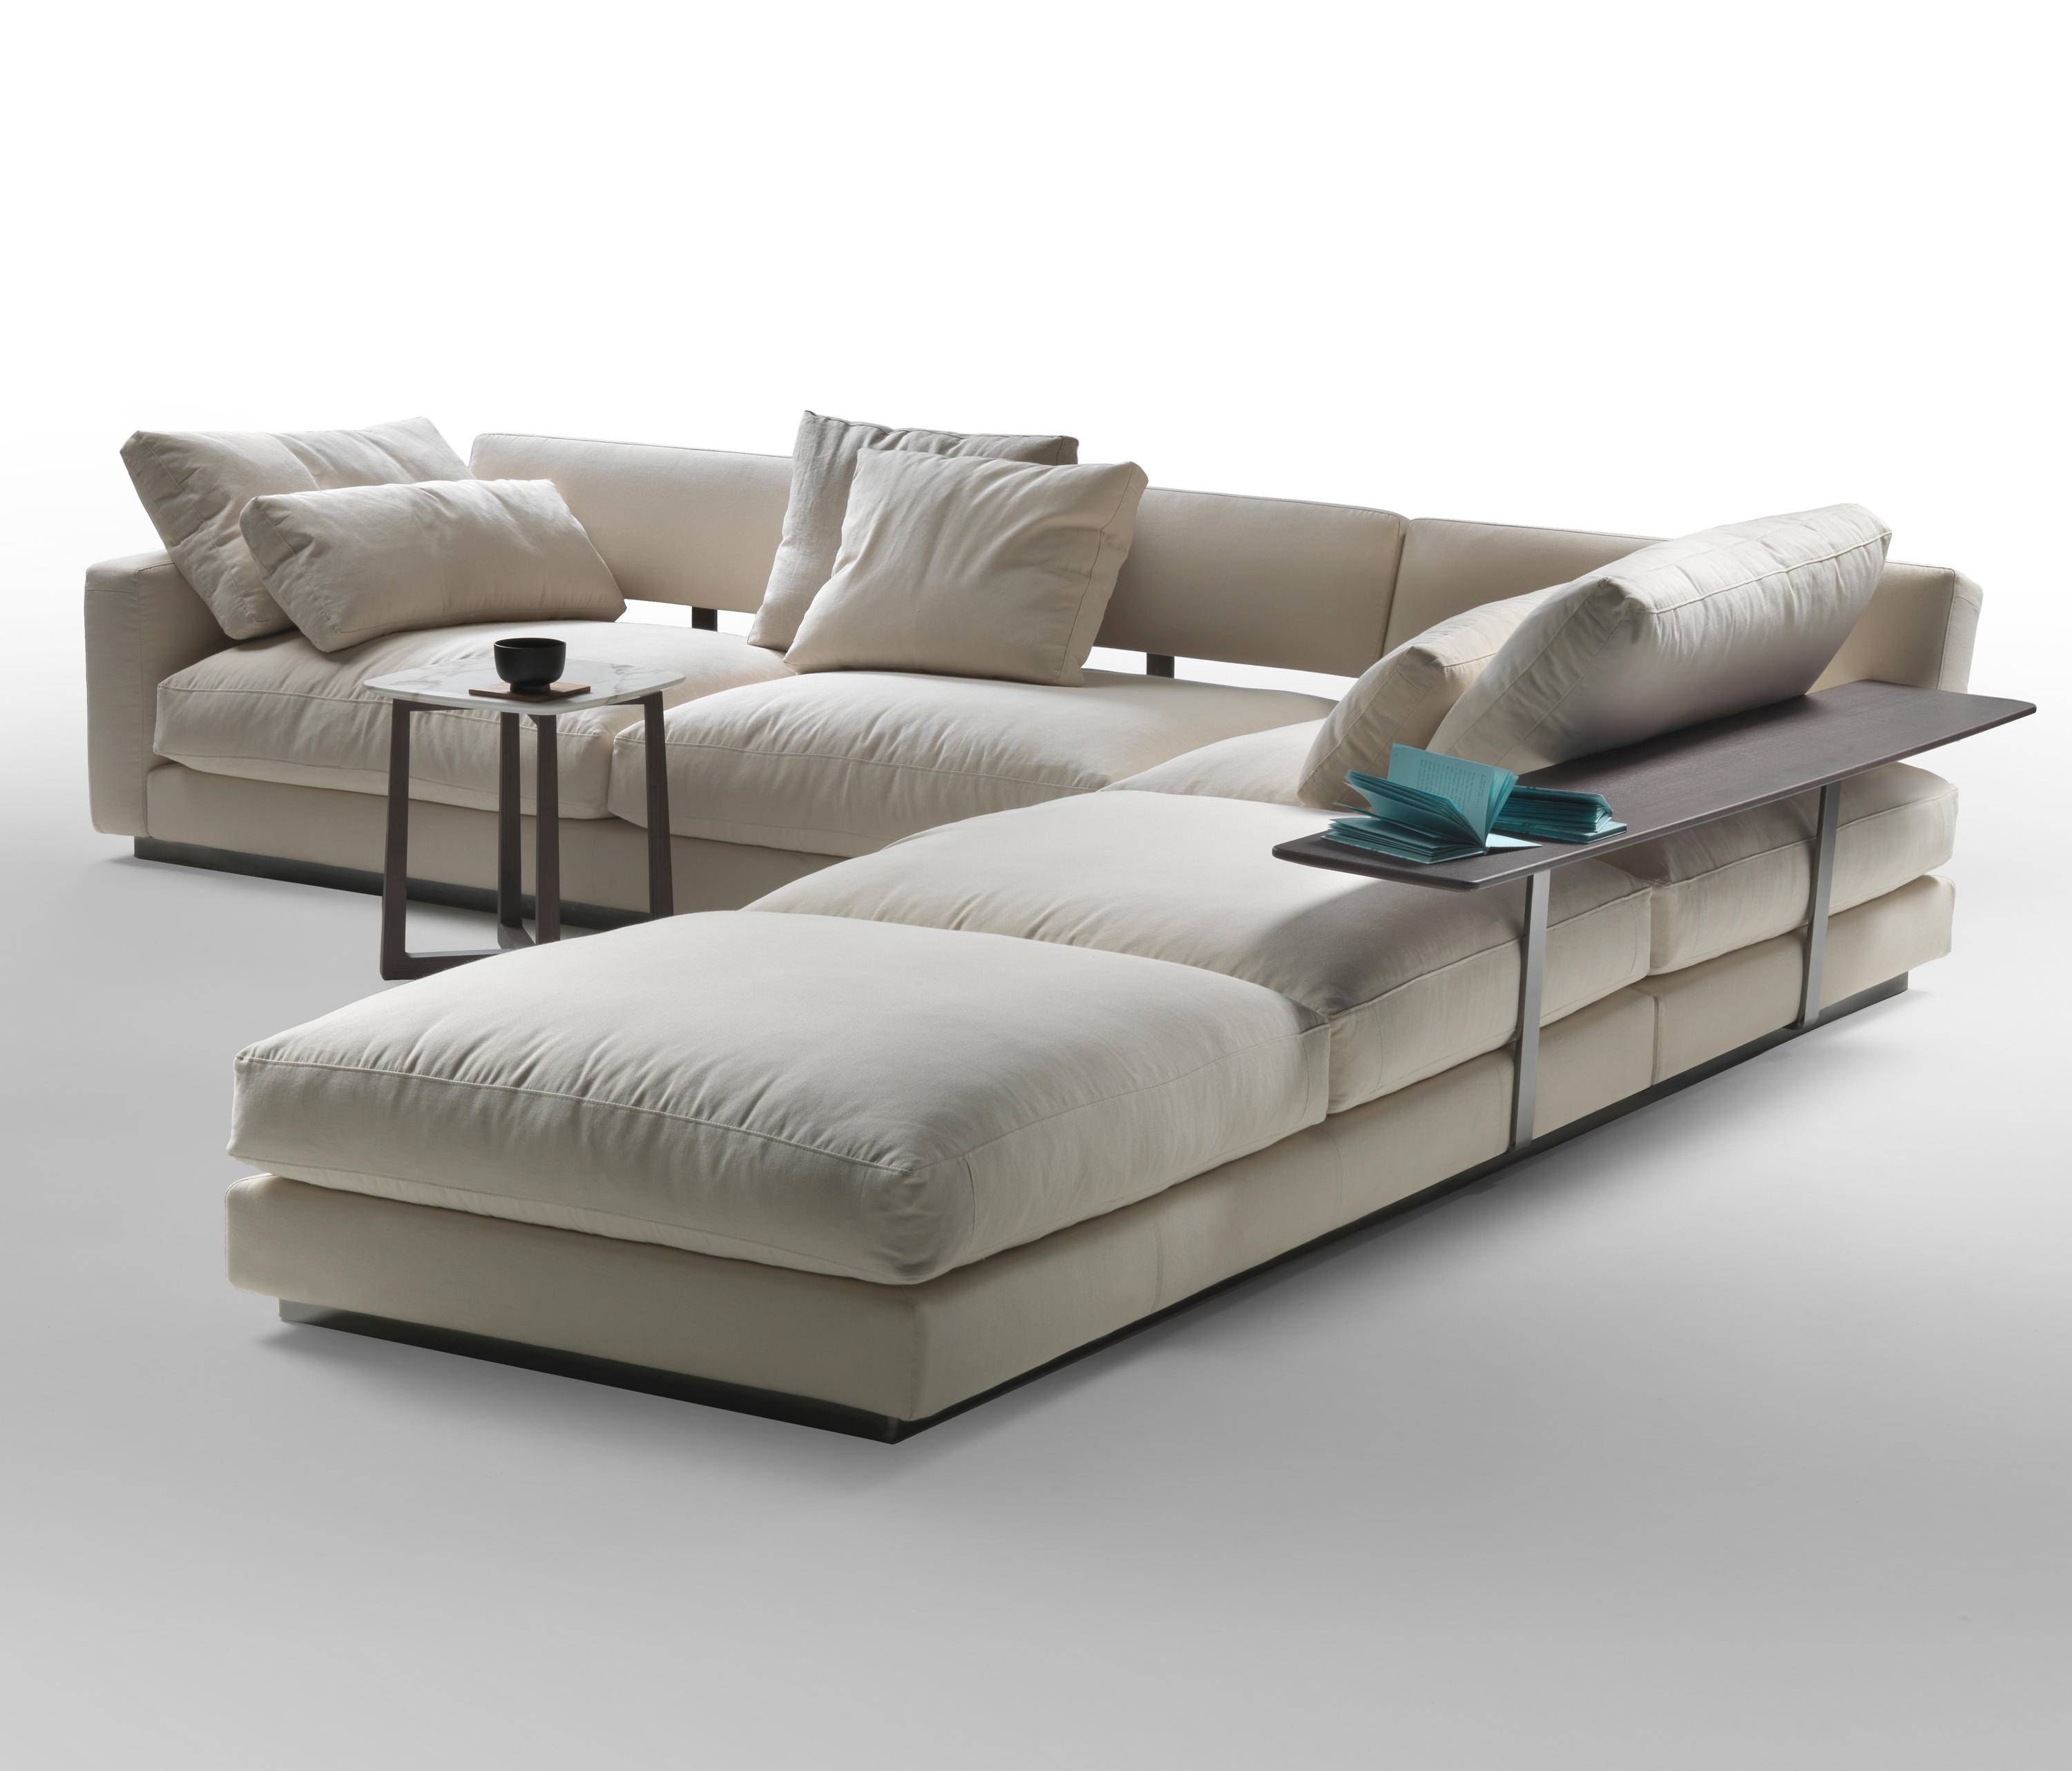 Pleasure Sectional Sofa - Modular Seating Systems From Flexform for Flexform Sofas (Image 19 of 25)